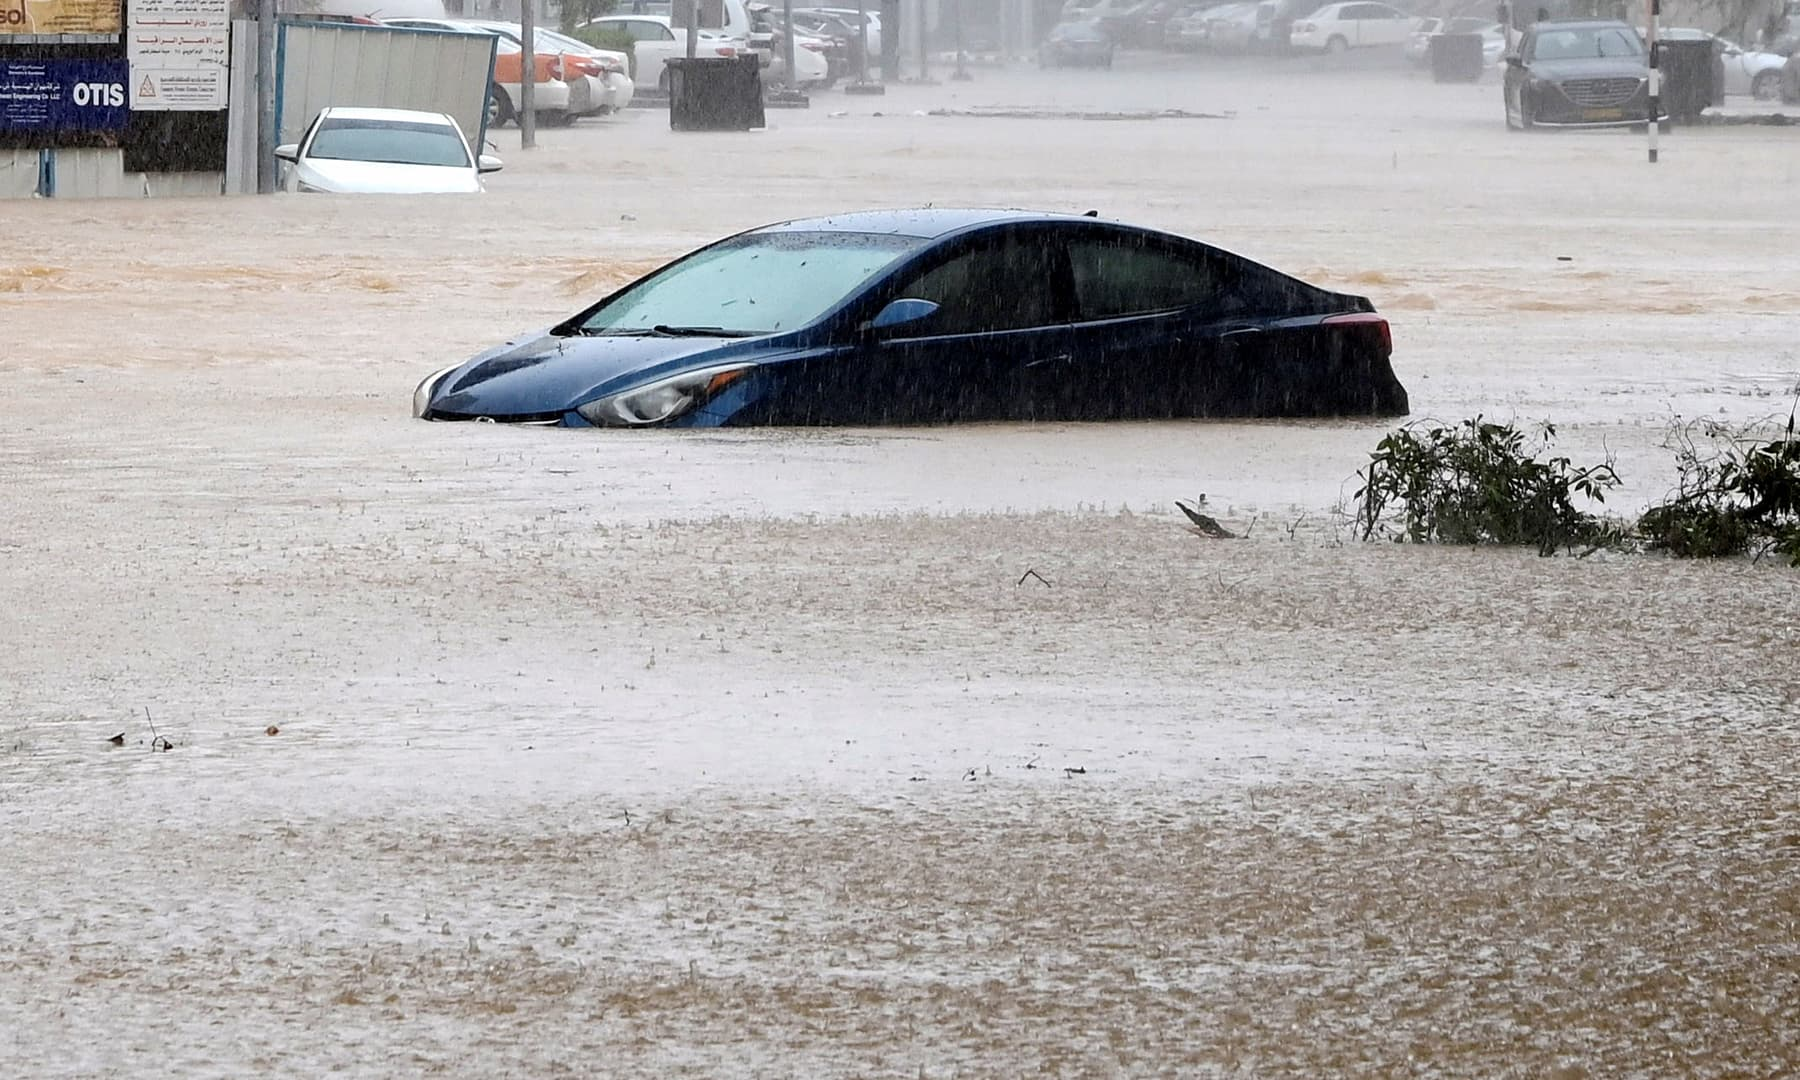 A car is partially submerged on a flooded street as Cyclone Shaheen makes landfall in Muscat, Oman, October 3. — Reuters